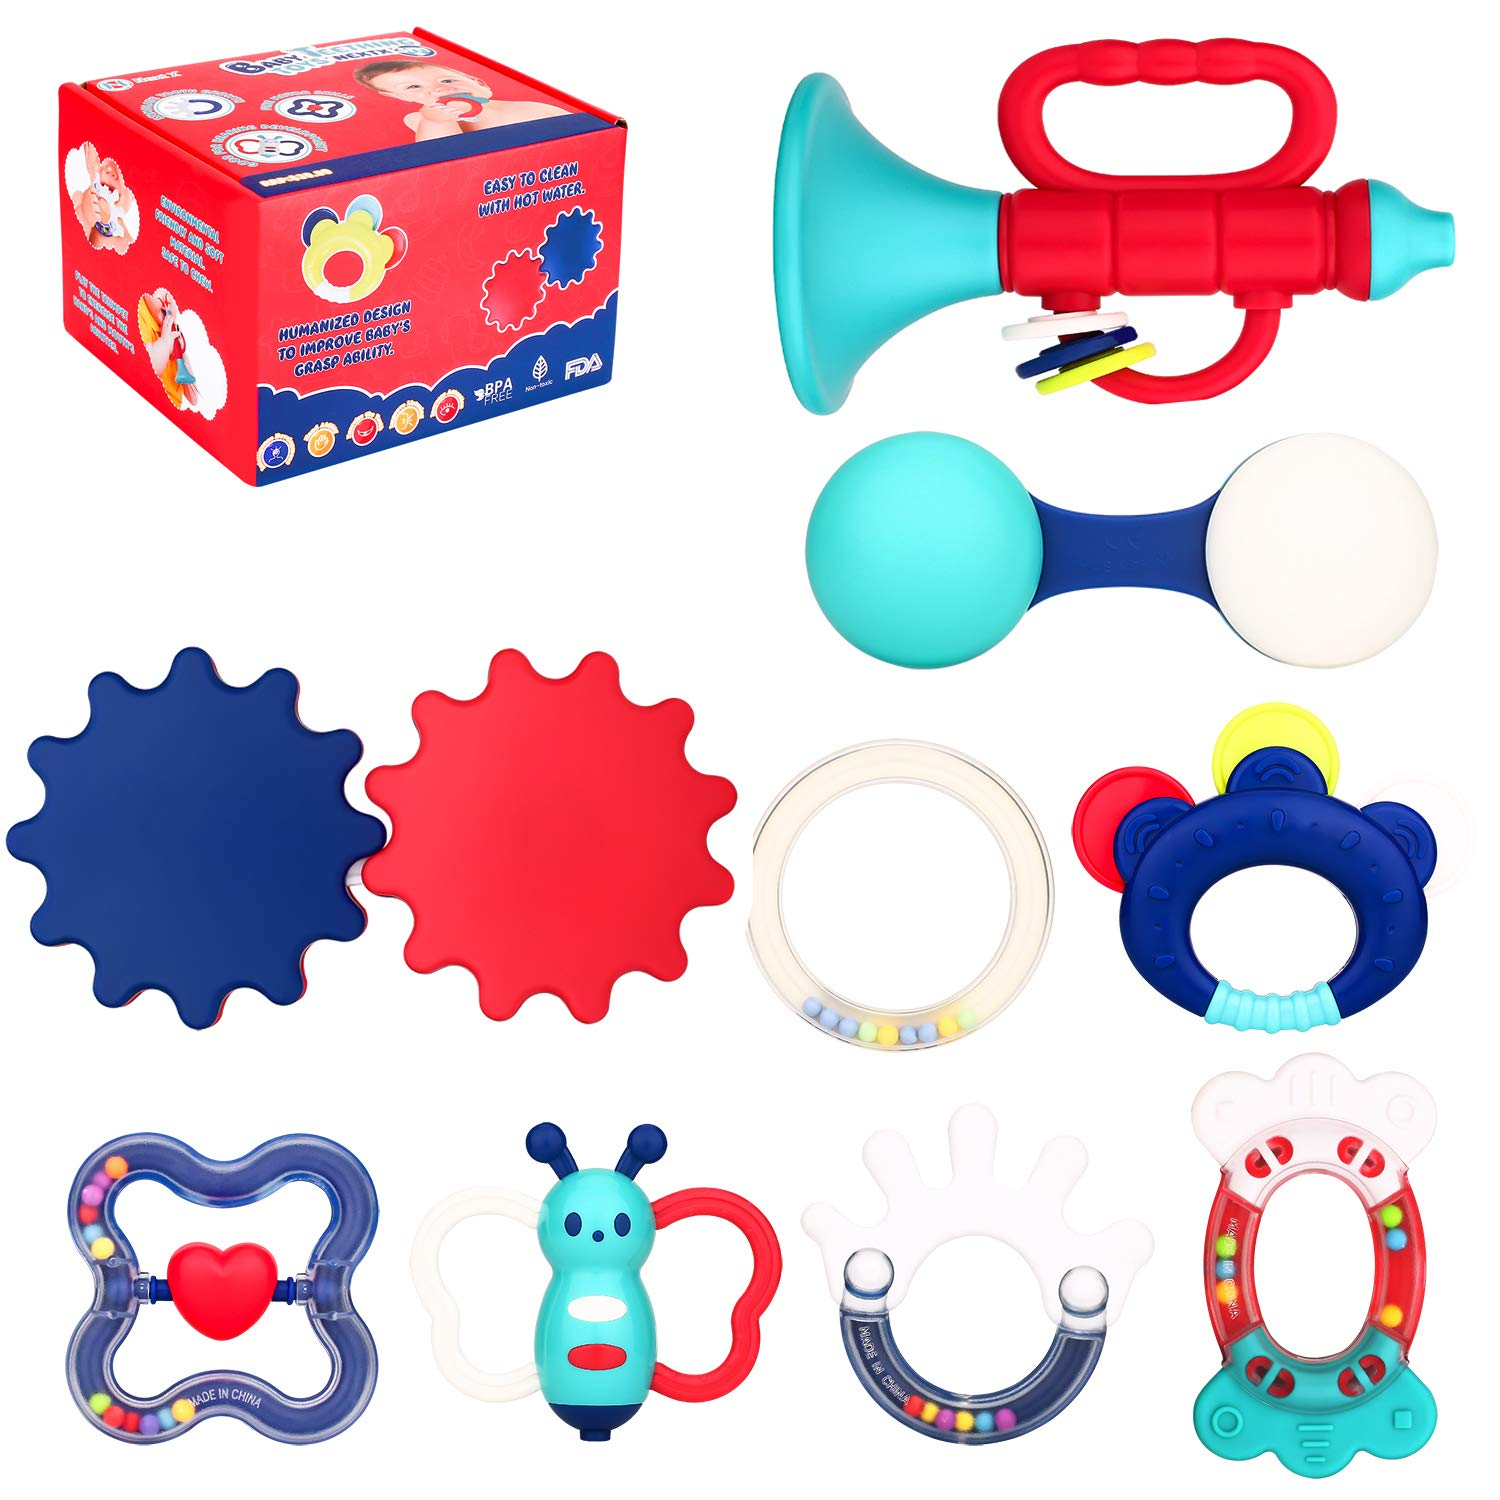 Biulotter 9 Pack Teether Rattle Set Baby Teething Toys Infant Training Toy Case